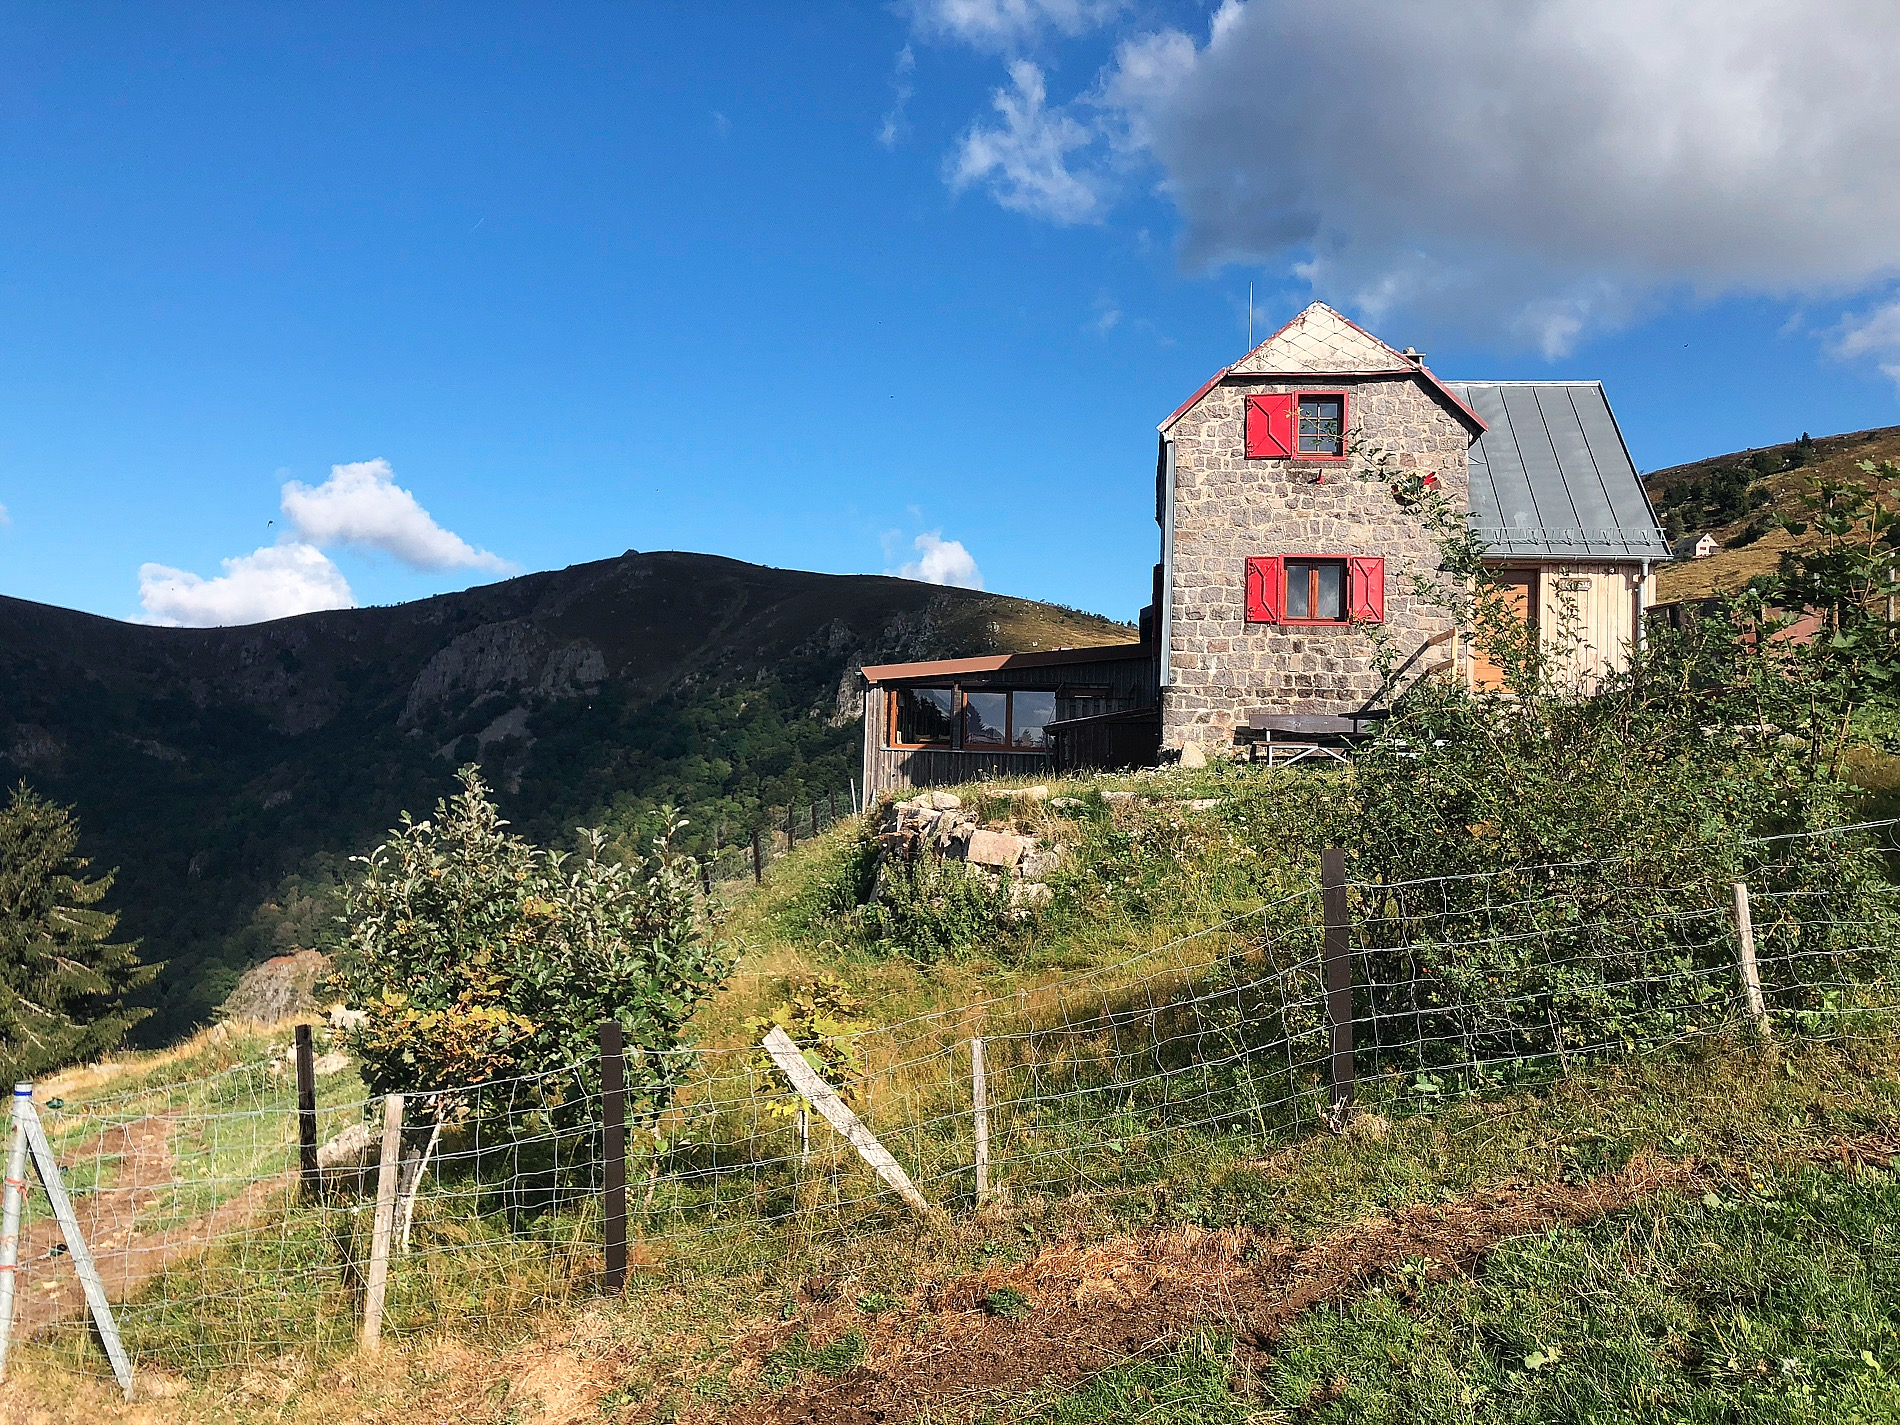 ferme auberge schiessroth le hohneck gaschney elsass wandern